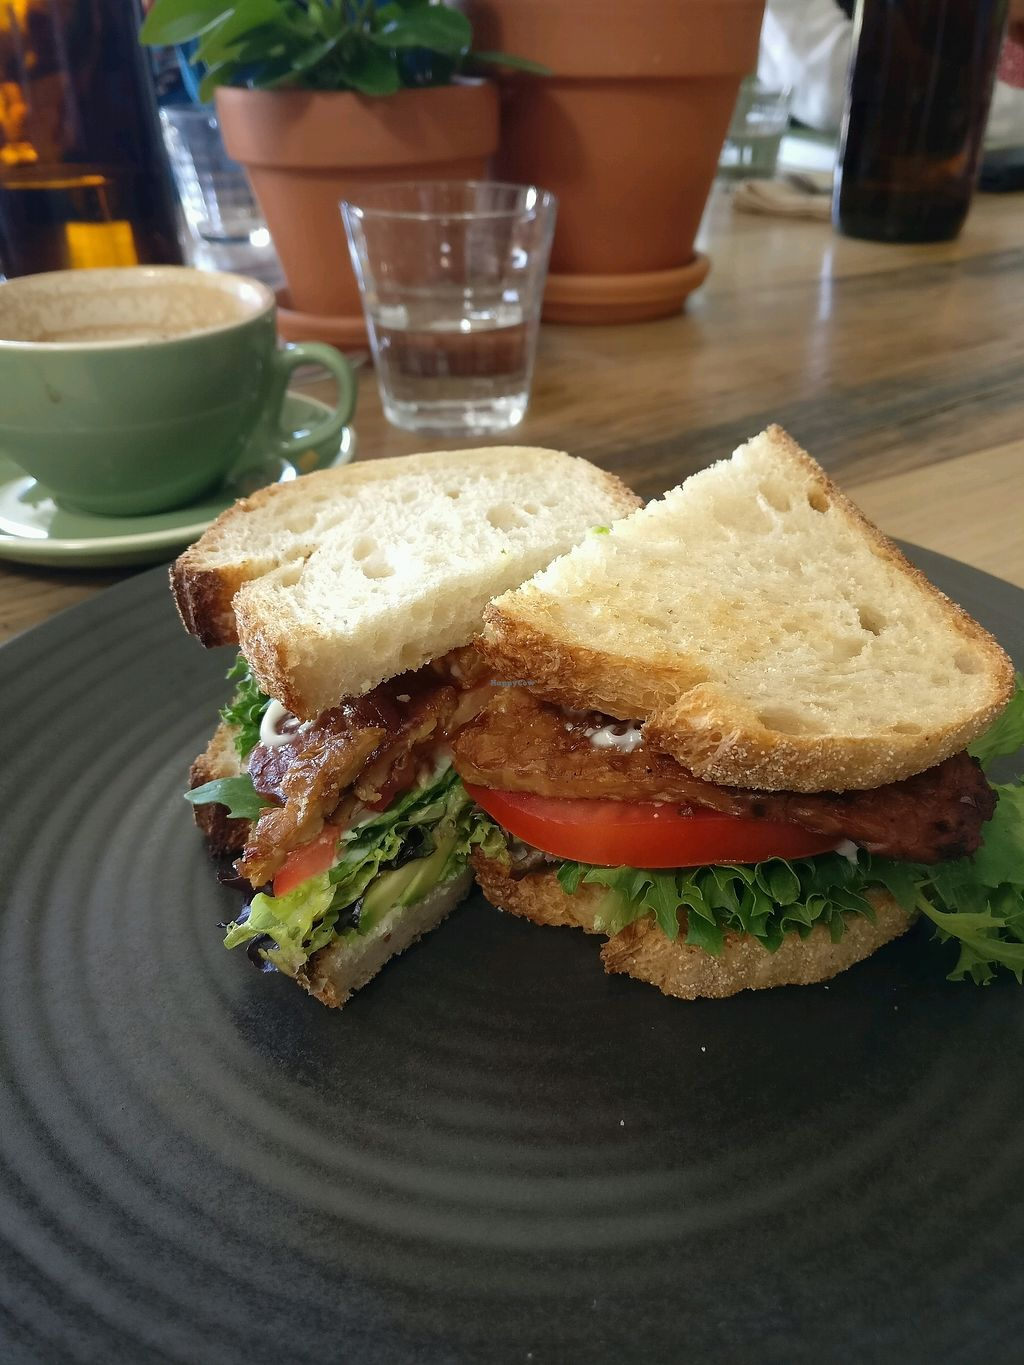 """Photo of One for the Crow  by <a href=""""/members/profile/Aloo"""">Aloo</a> <br/>the BLT with avo <br/> March 18, 2018  - <a href='/contact/abuse/image/112836/372227'>Report</a>"""